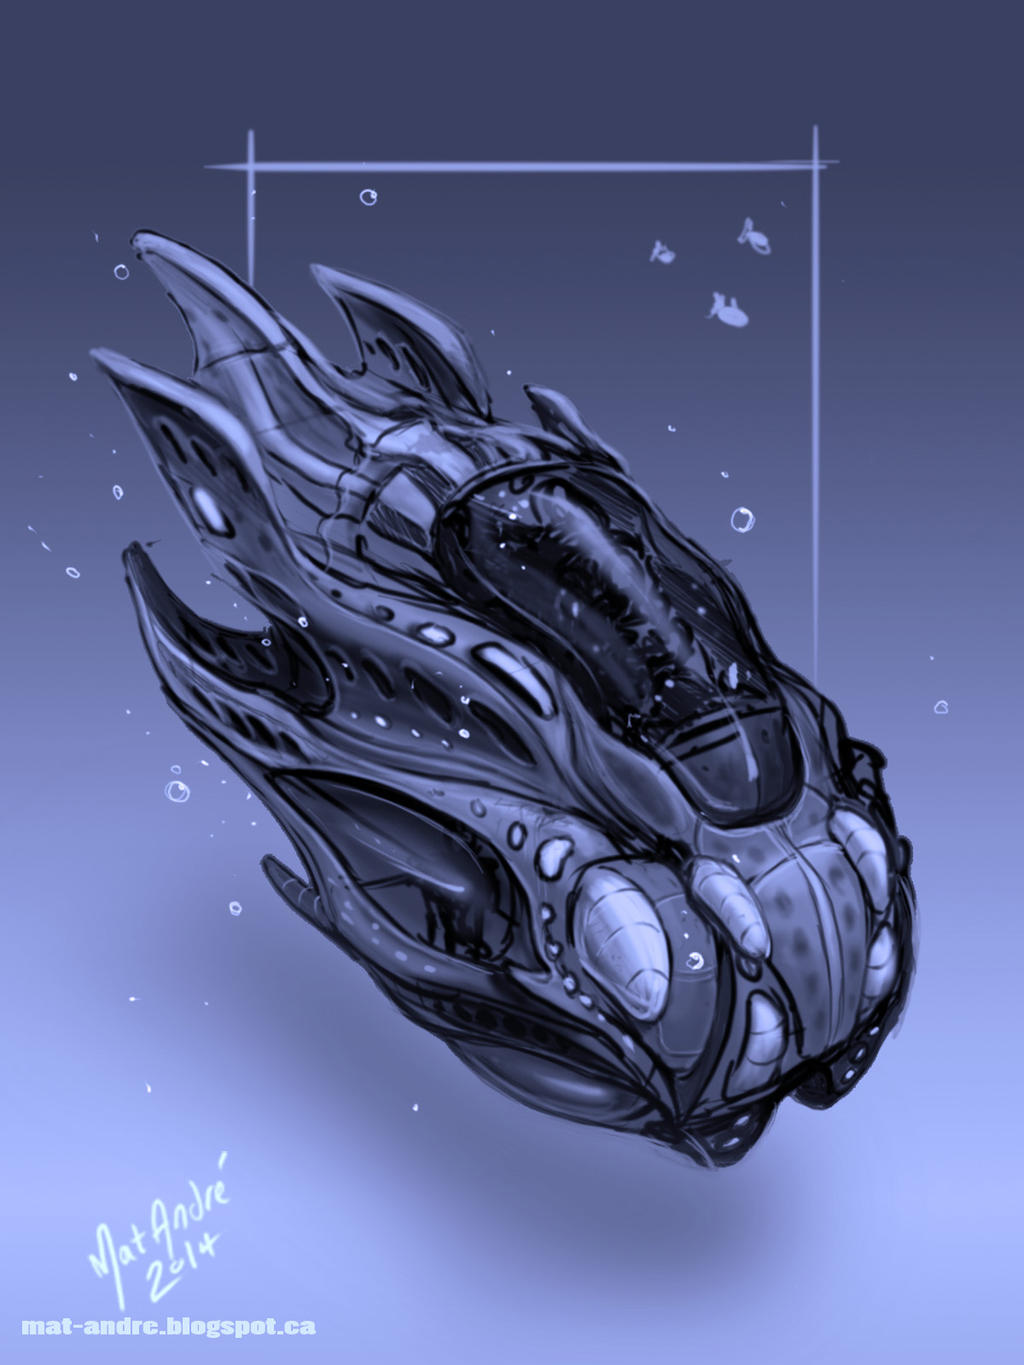 Underwater Vehicle 01 - By - Mat Andre by MatAndre